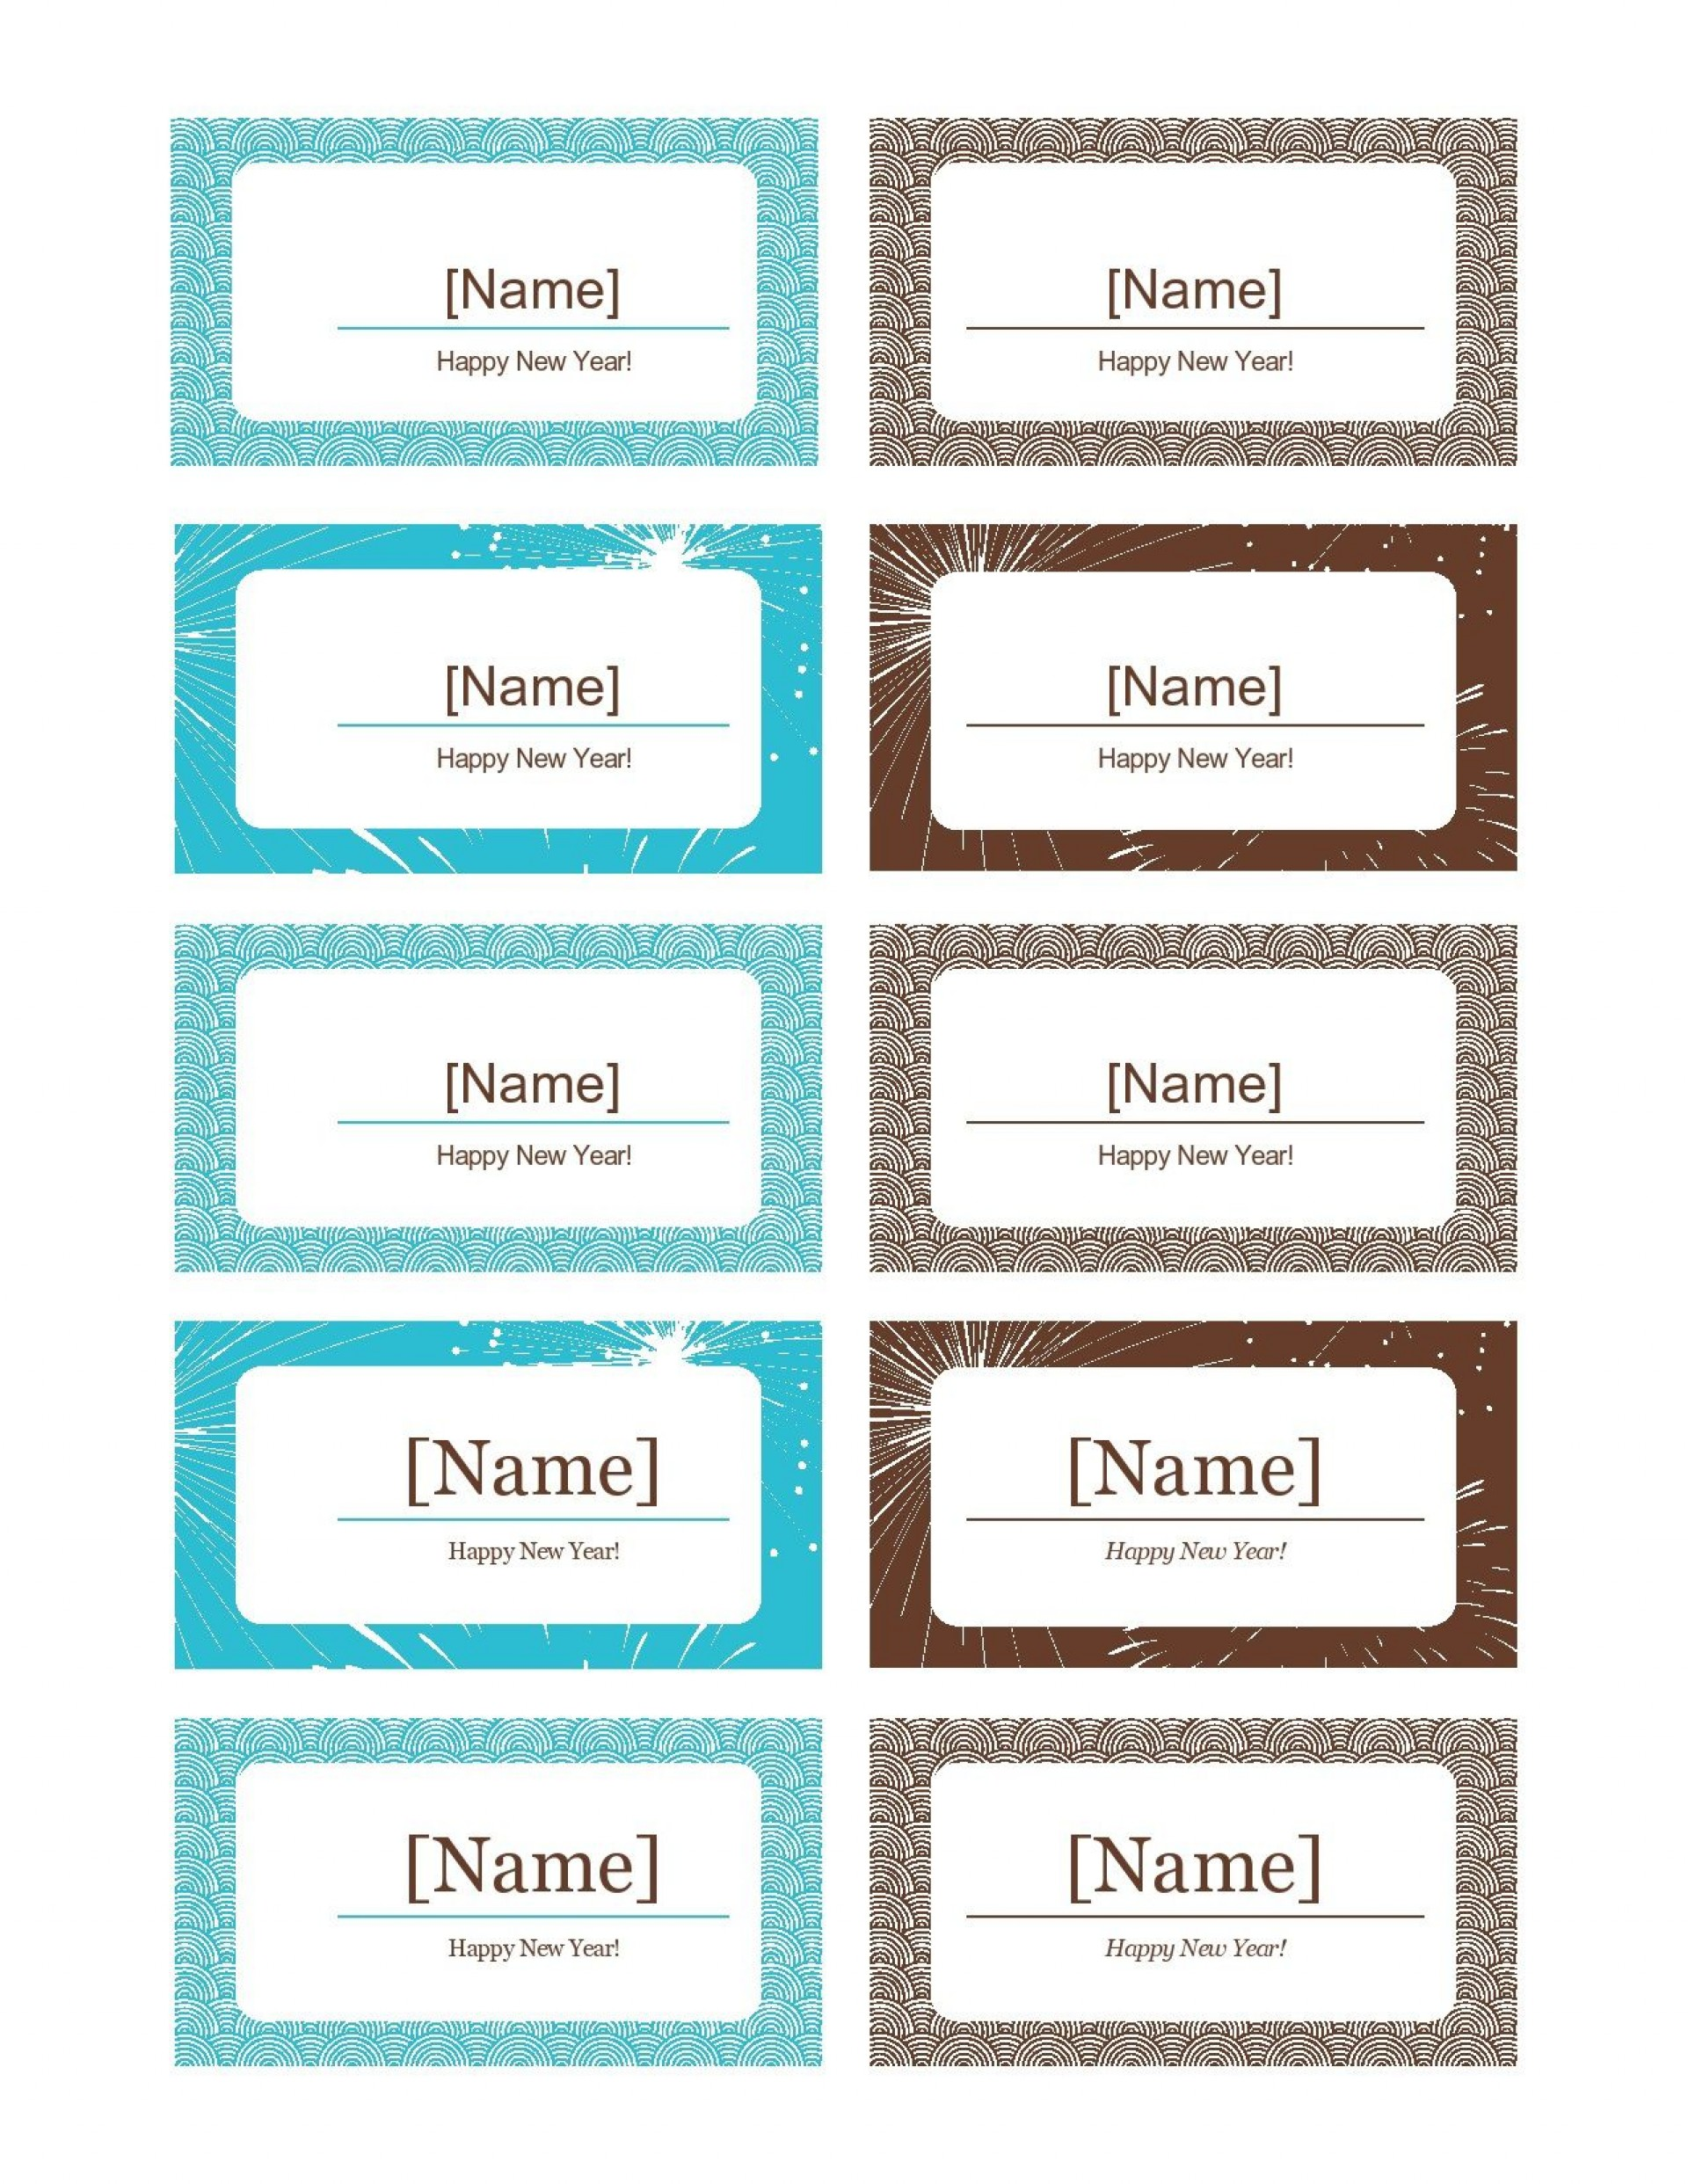 006 Stunning Name Place Card Template Free Download Picture  Psd Vector1920